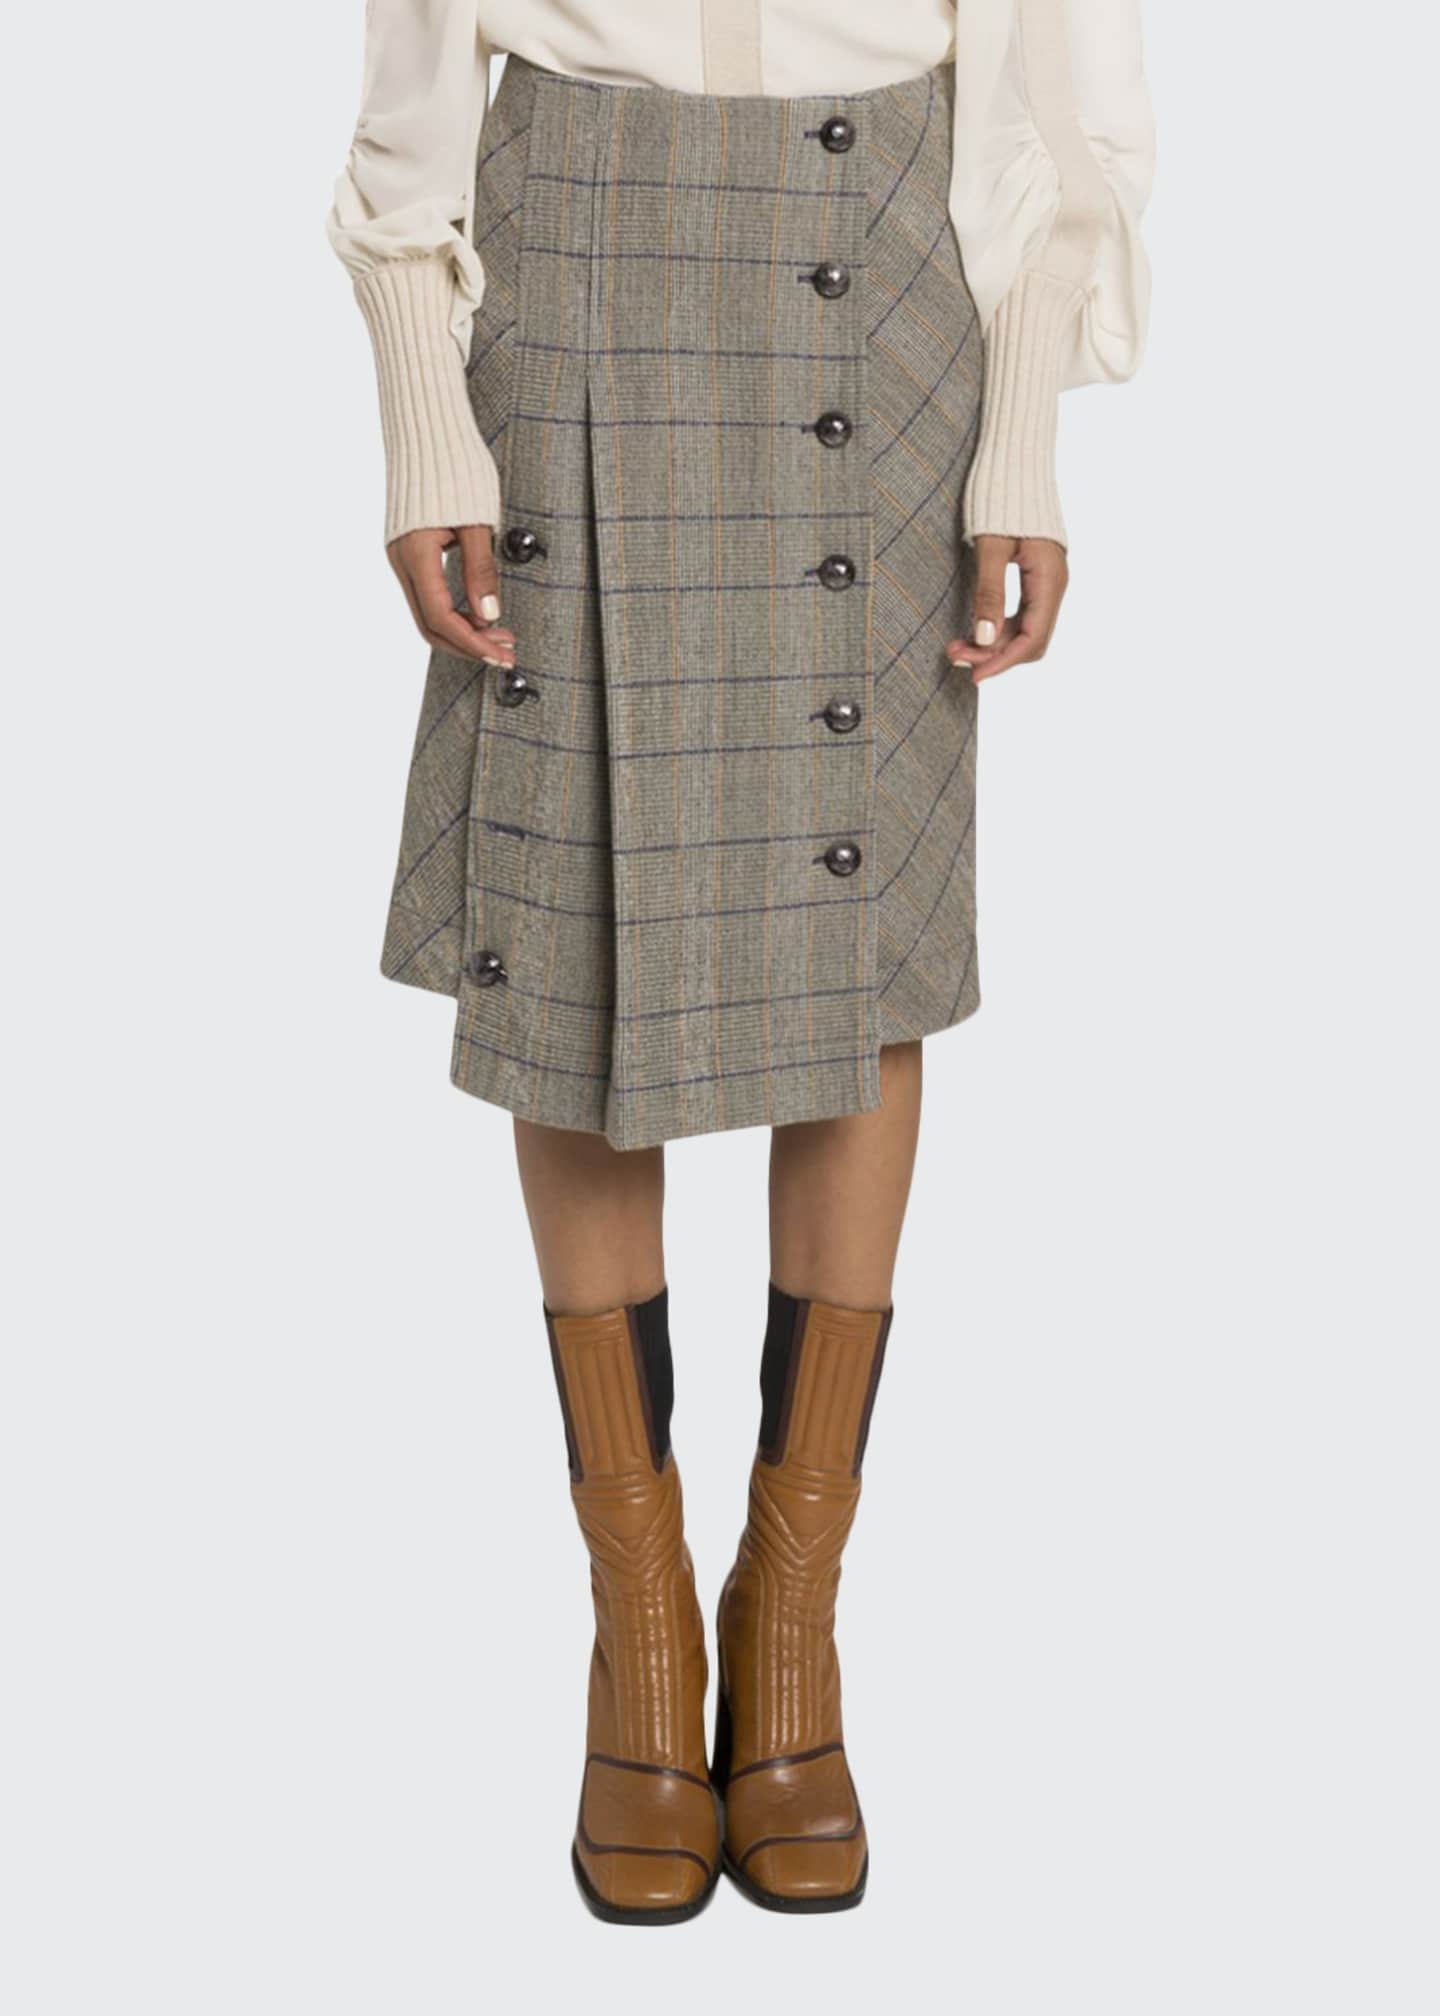 Chloe Button-Front Pleated Skirt